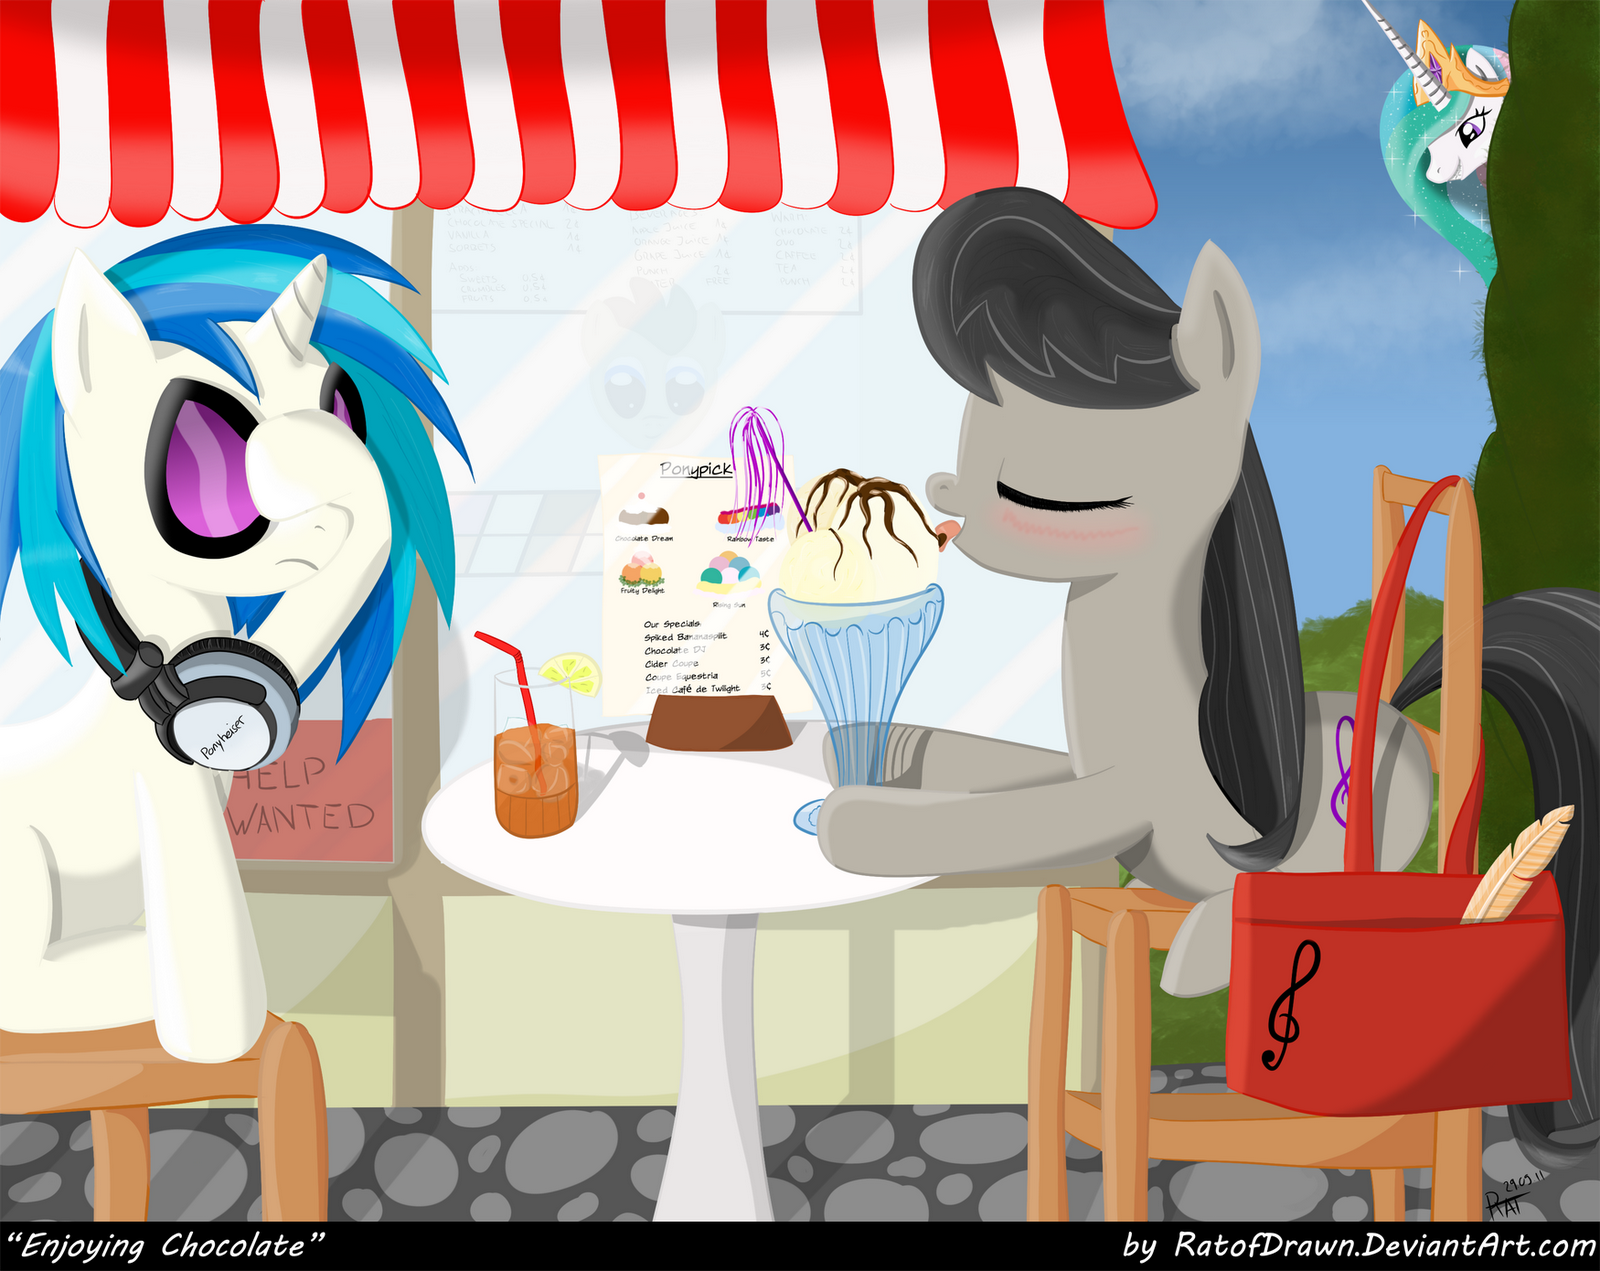 65085+-+DJ_P0n-3+Octavia+When_you_see_it+artist+RatofDrawn+celestia+ice_cream+vinyl_scratch.png